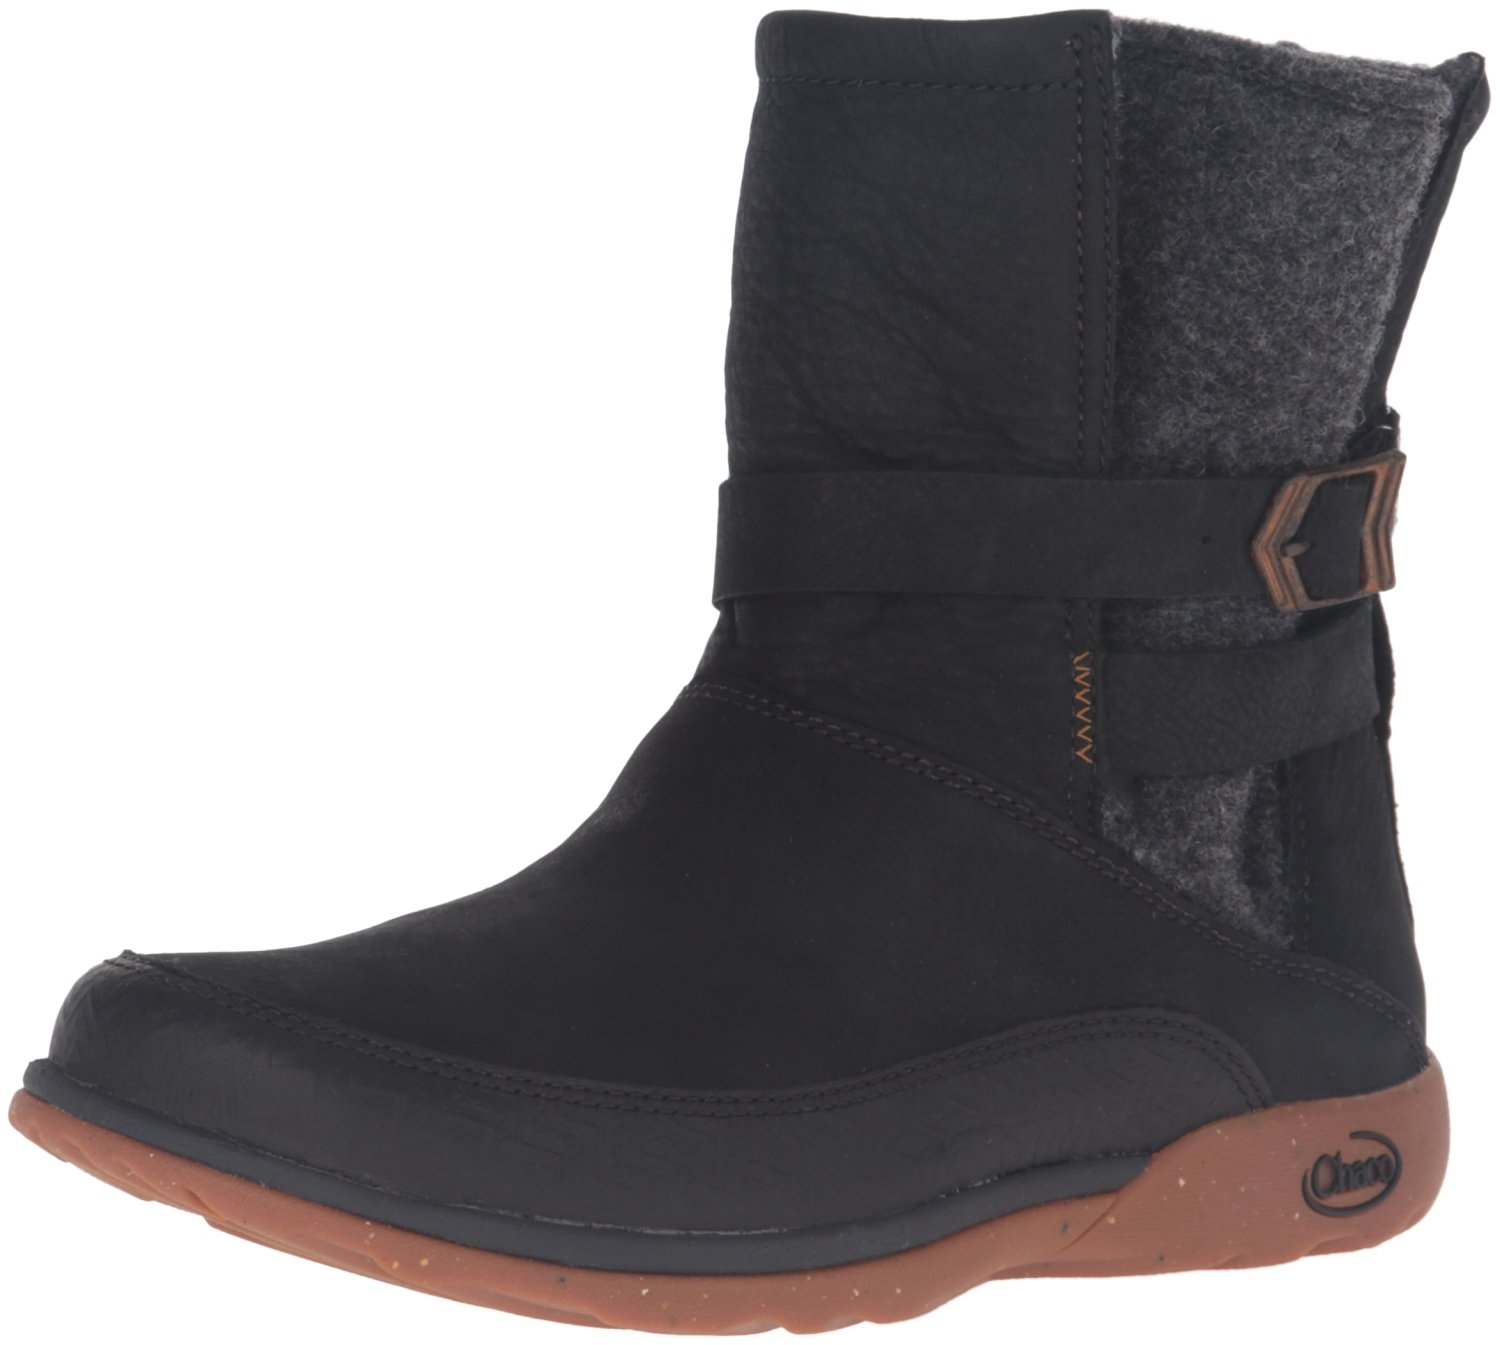 Chaco Women's Hopi Boot by Chaco